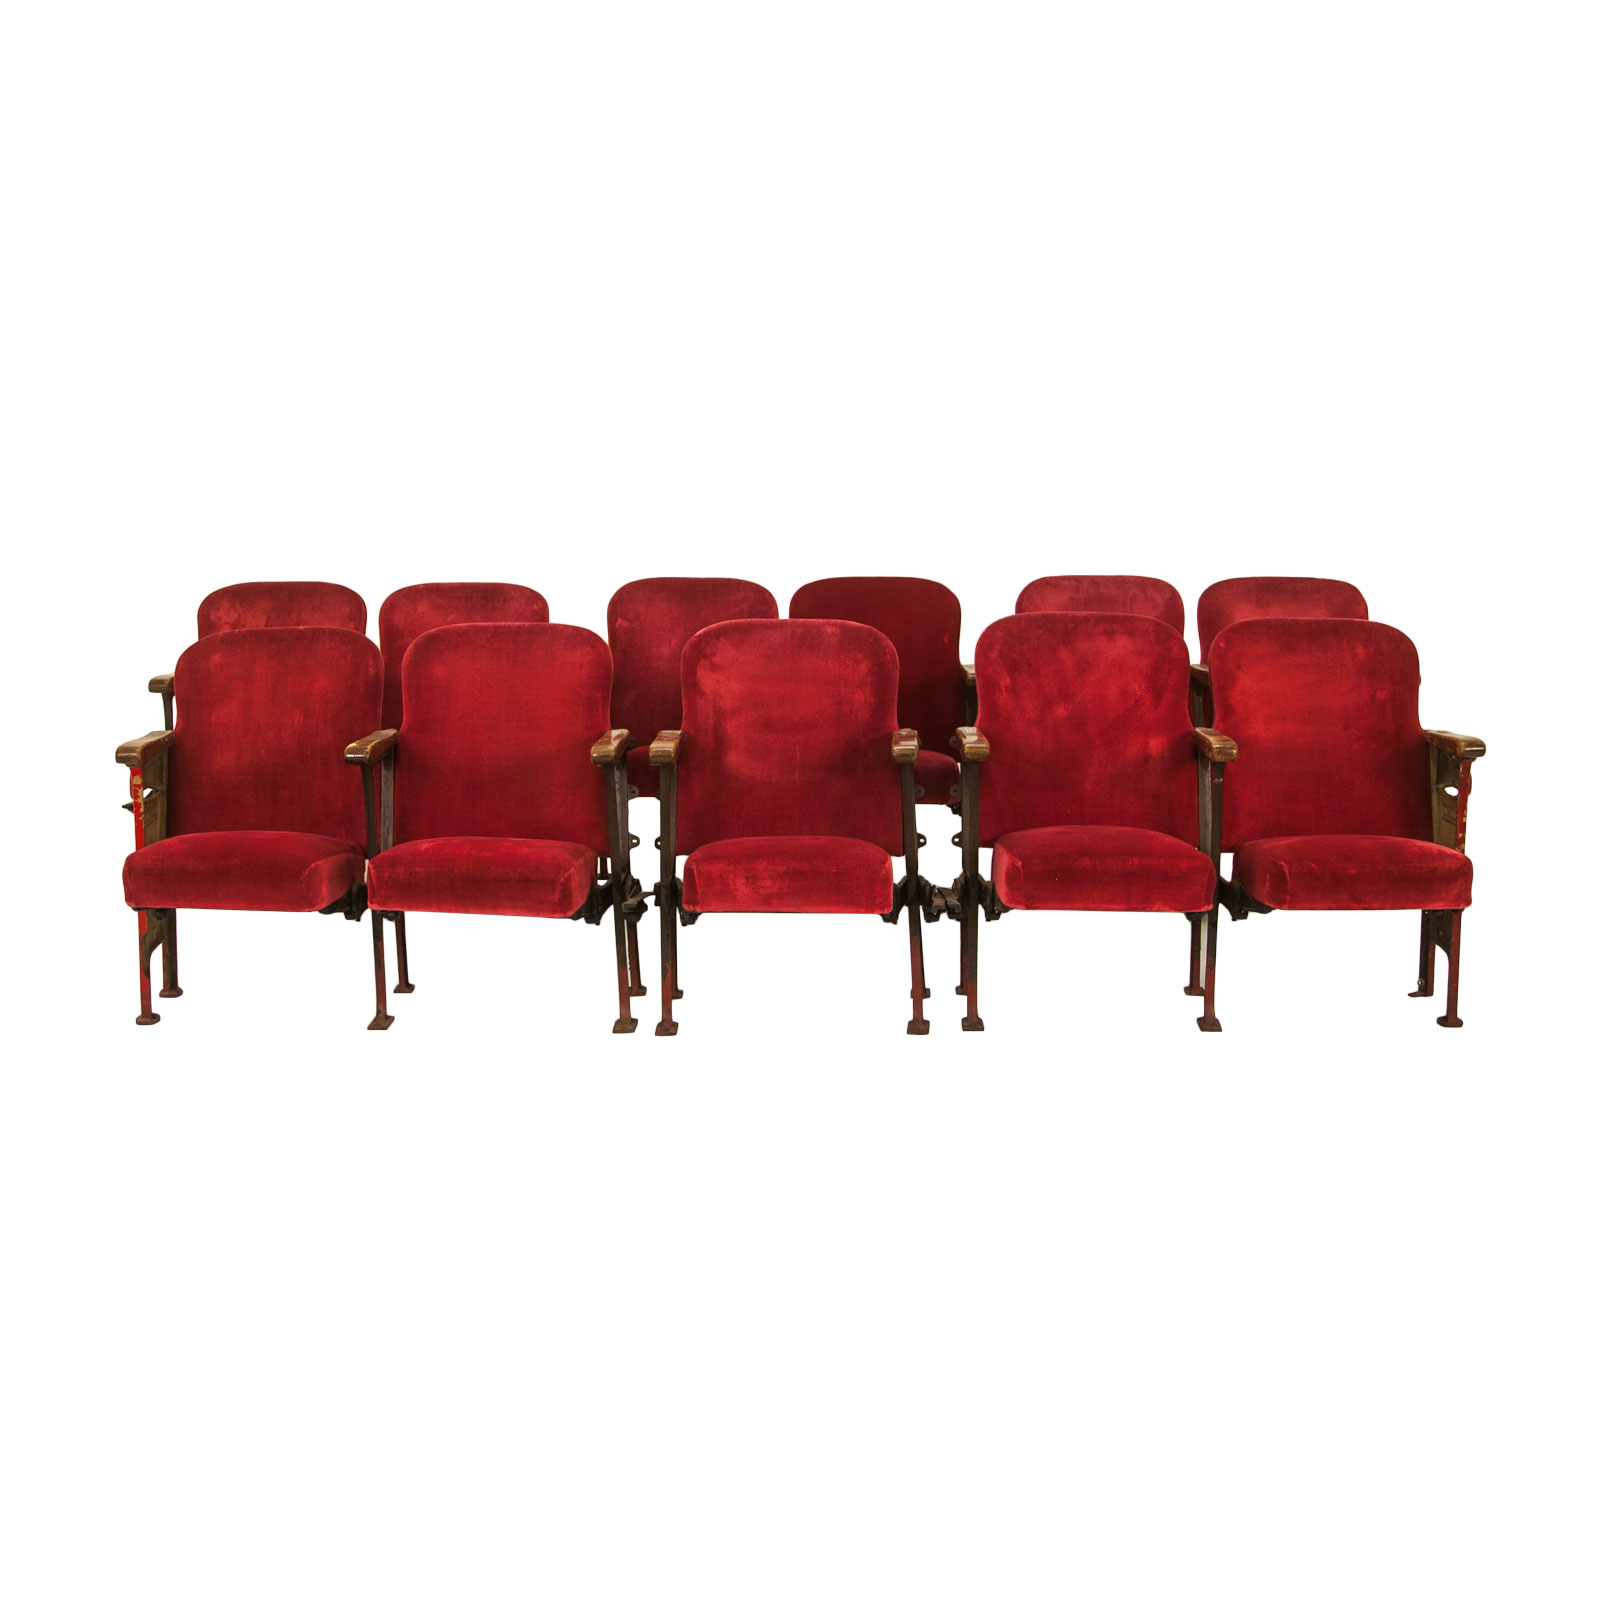 2 seat theater chairs alba slat back dining chair theatre rental event furniture rentals delivery